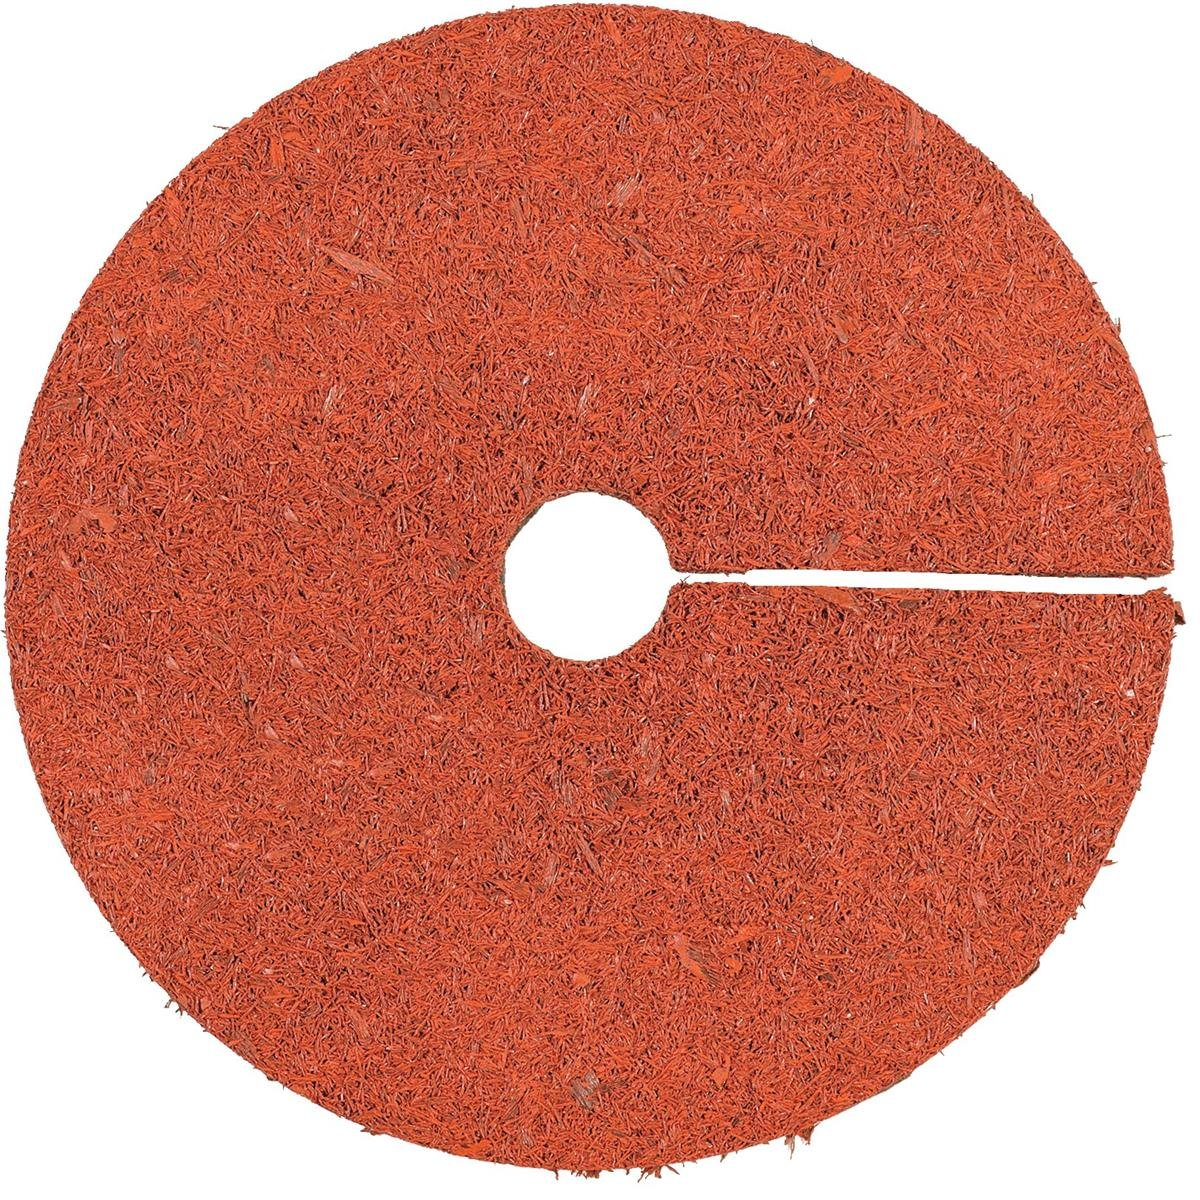 International Mulch Rubber Mulch Tree Ring, 24'' Diameter, Red by International Mulch